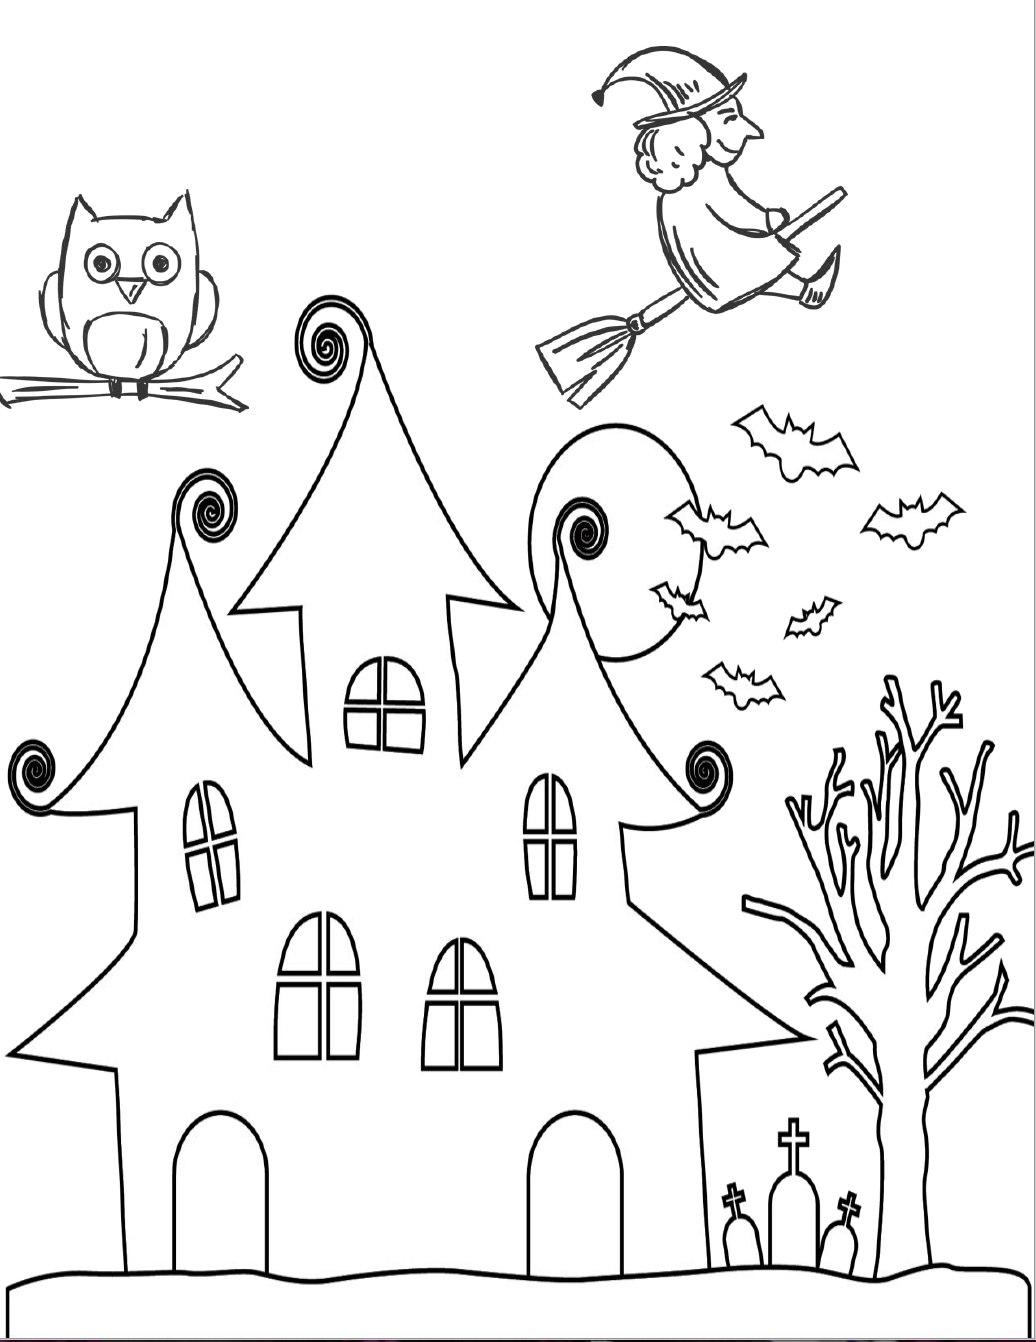 5 Free Printable Halloween Coloring Pages For Kids Halloween Printables Free Halloween Coloring Pages Printable Halloween Coloring Pages